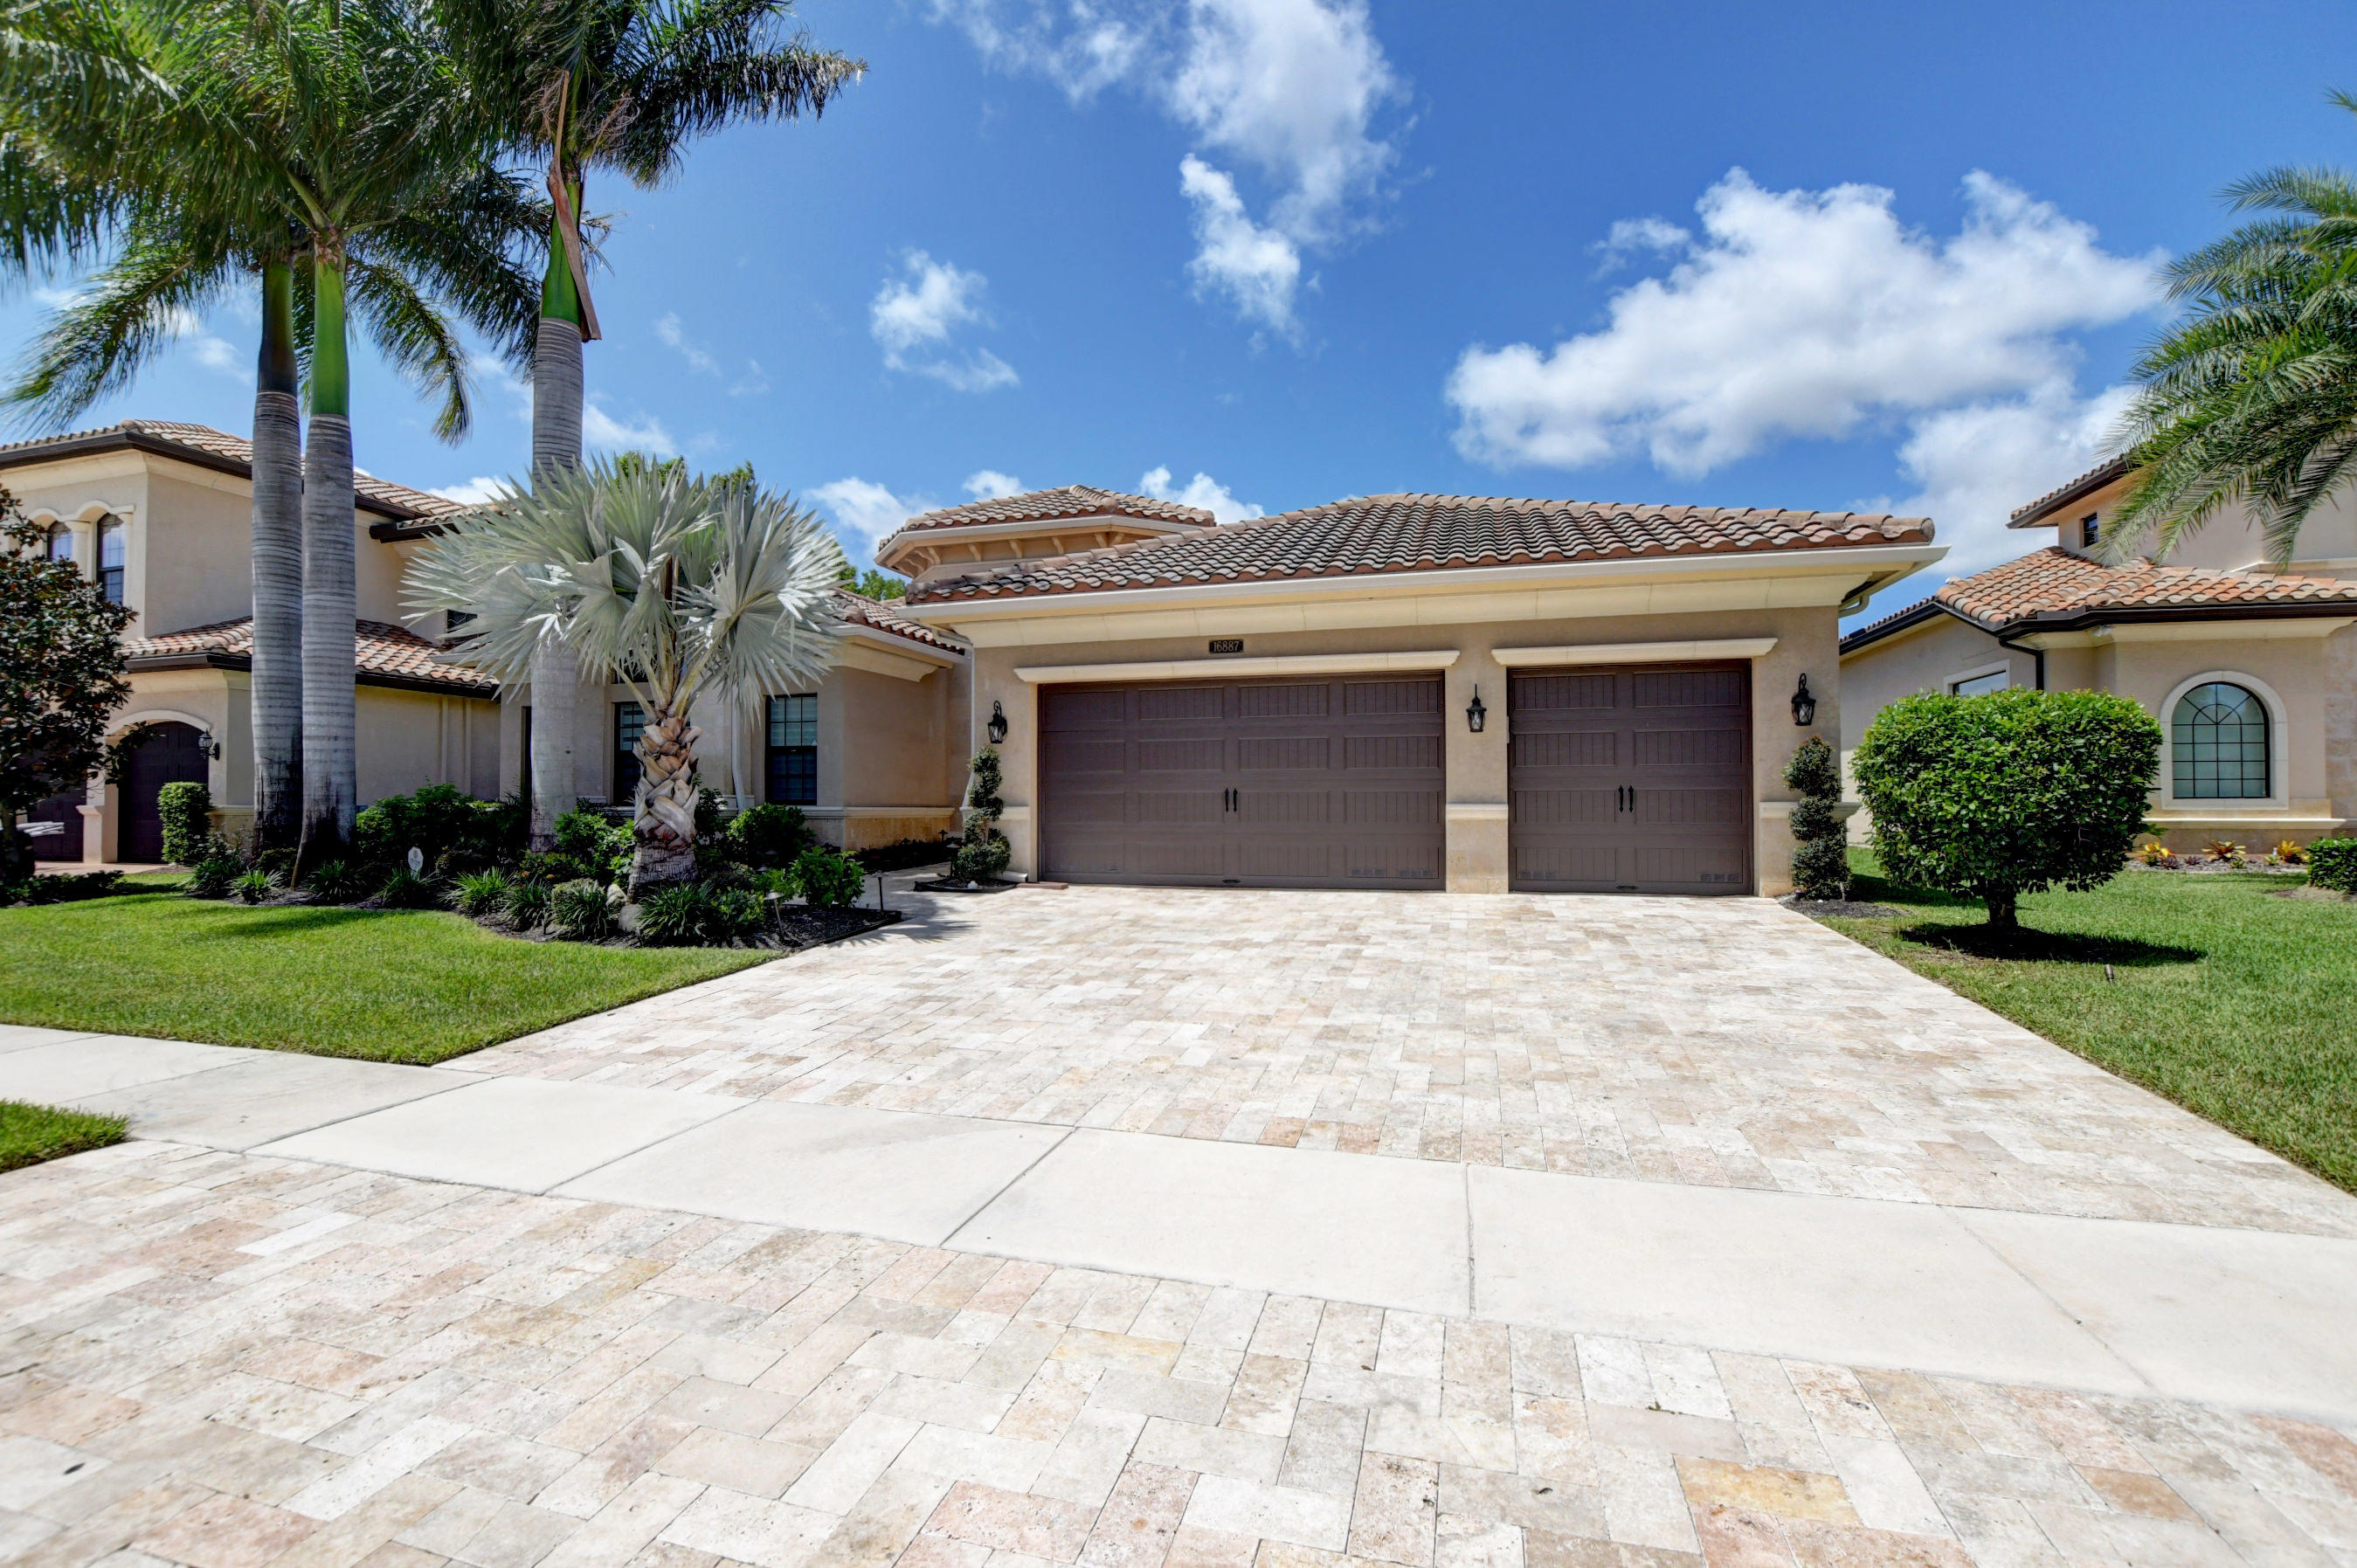 16887  Charles River Drive  For Sale 10738568, FL